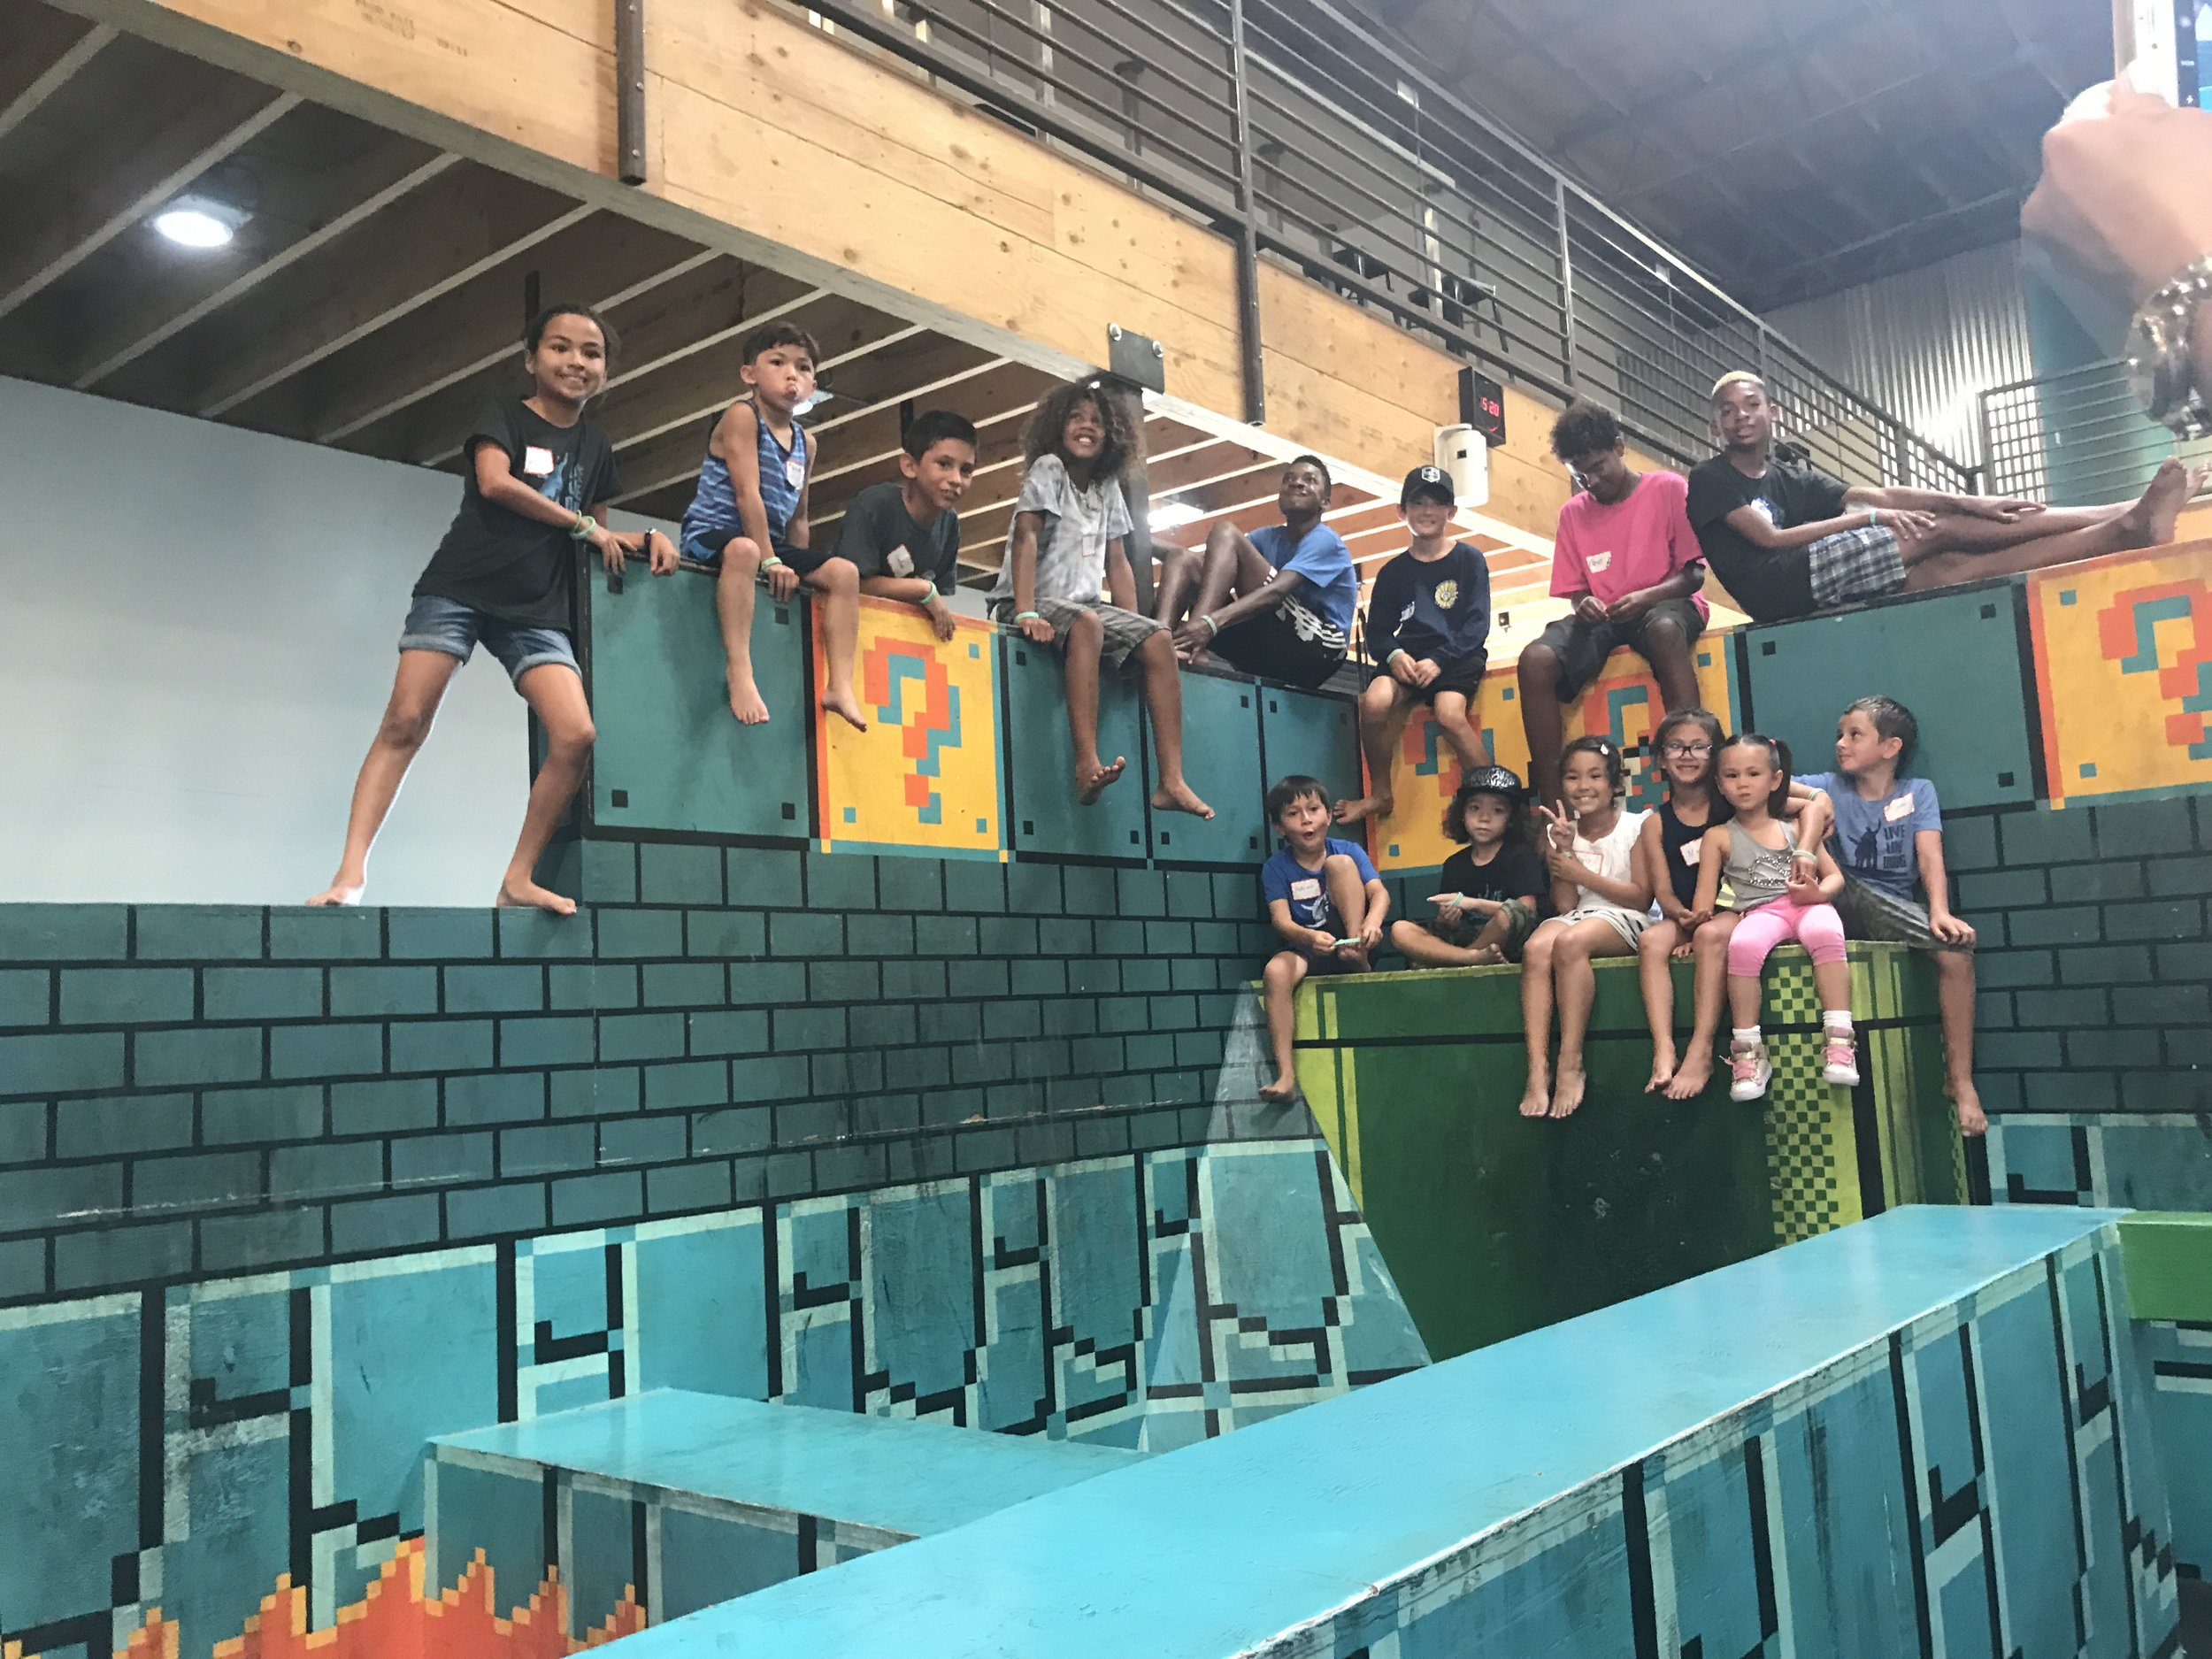 We had fun at our August Social Circle at Tempest Academy. Everyone got to jump, climb, run, bounce, and slide. Lot's of smiles and friends on this special day.